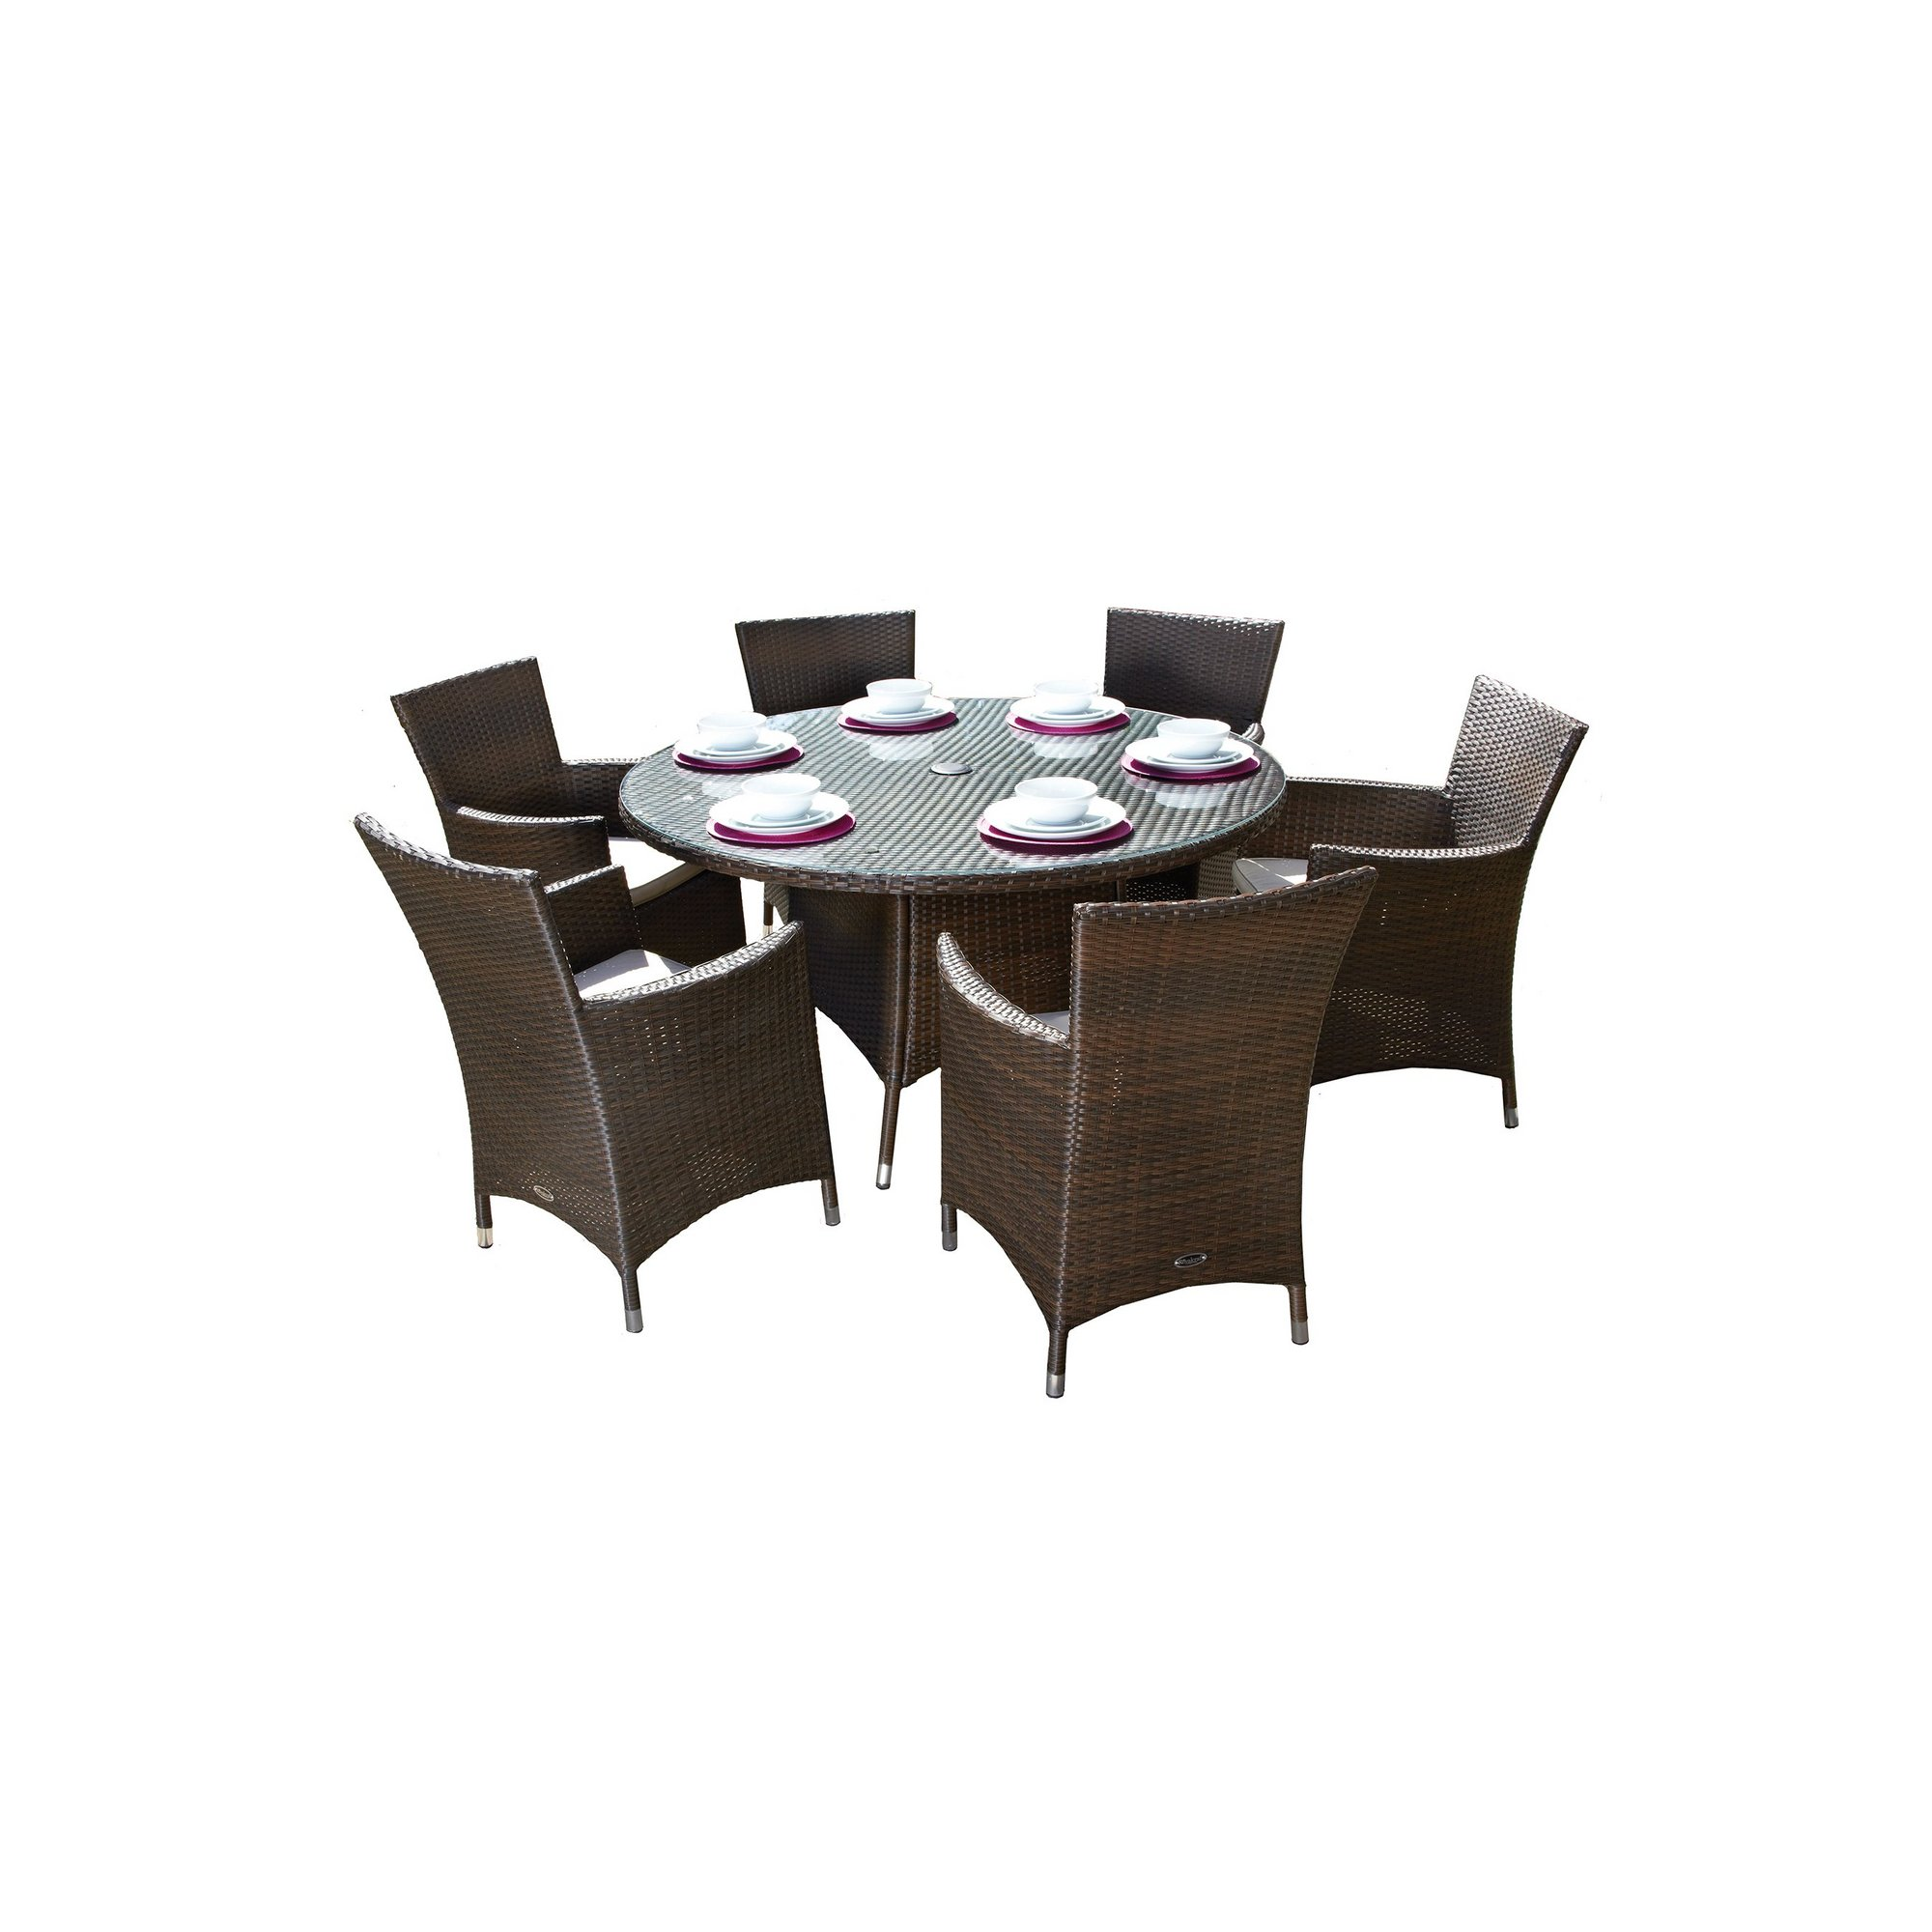 Image of Cannes 6 Seater Round Dining Set